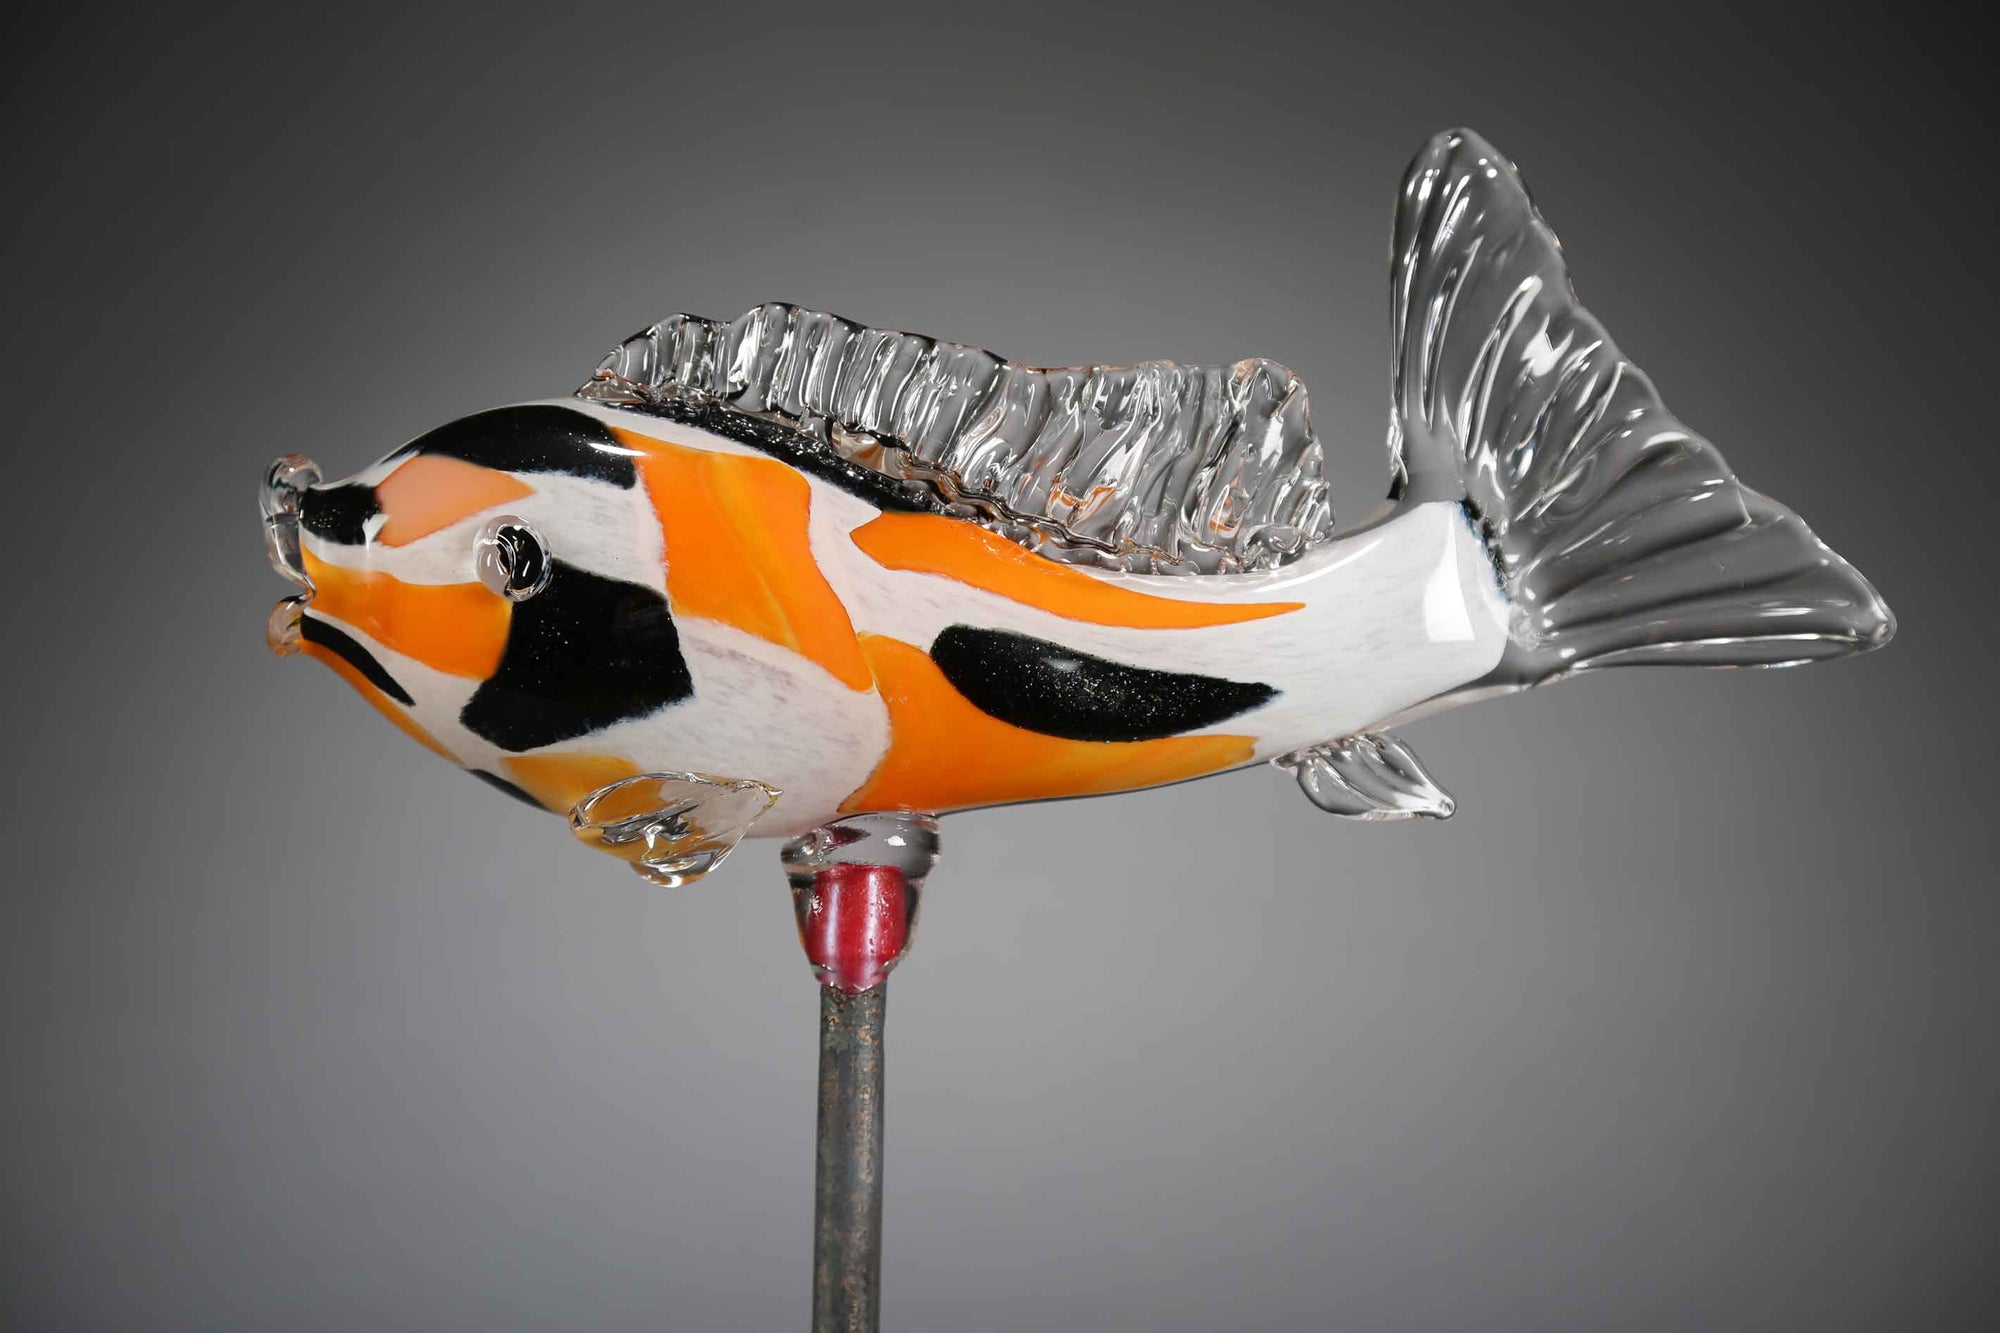 Fish Koi Orange Black White